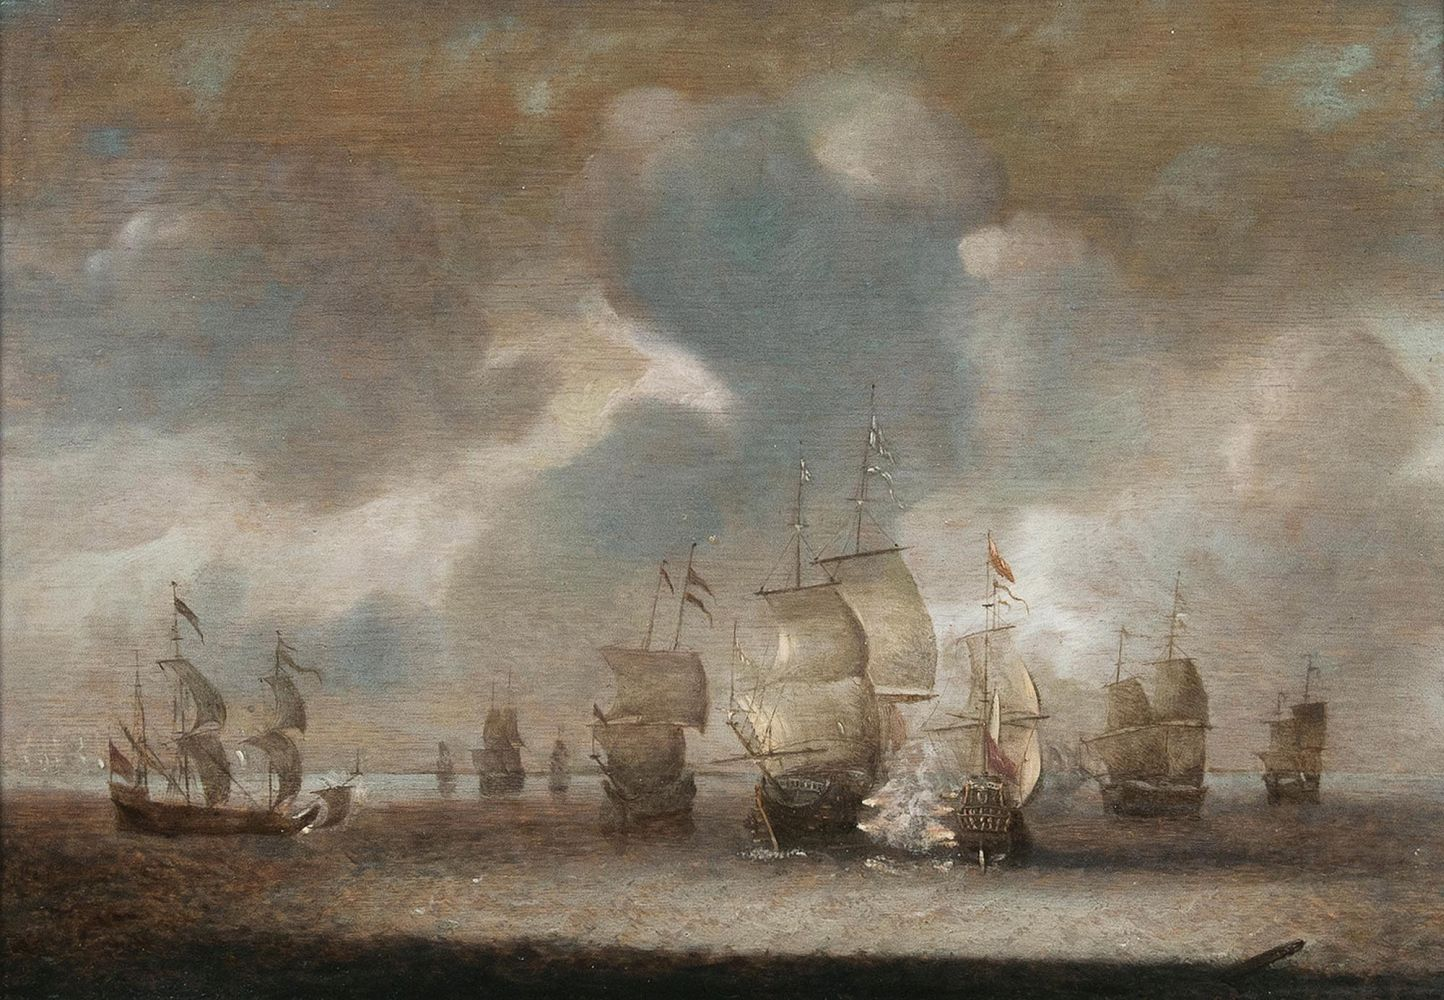 Naval Battle with English Ships